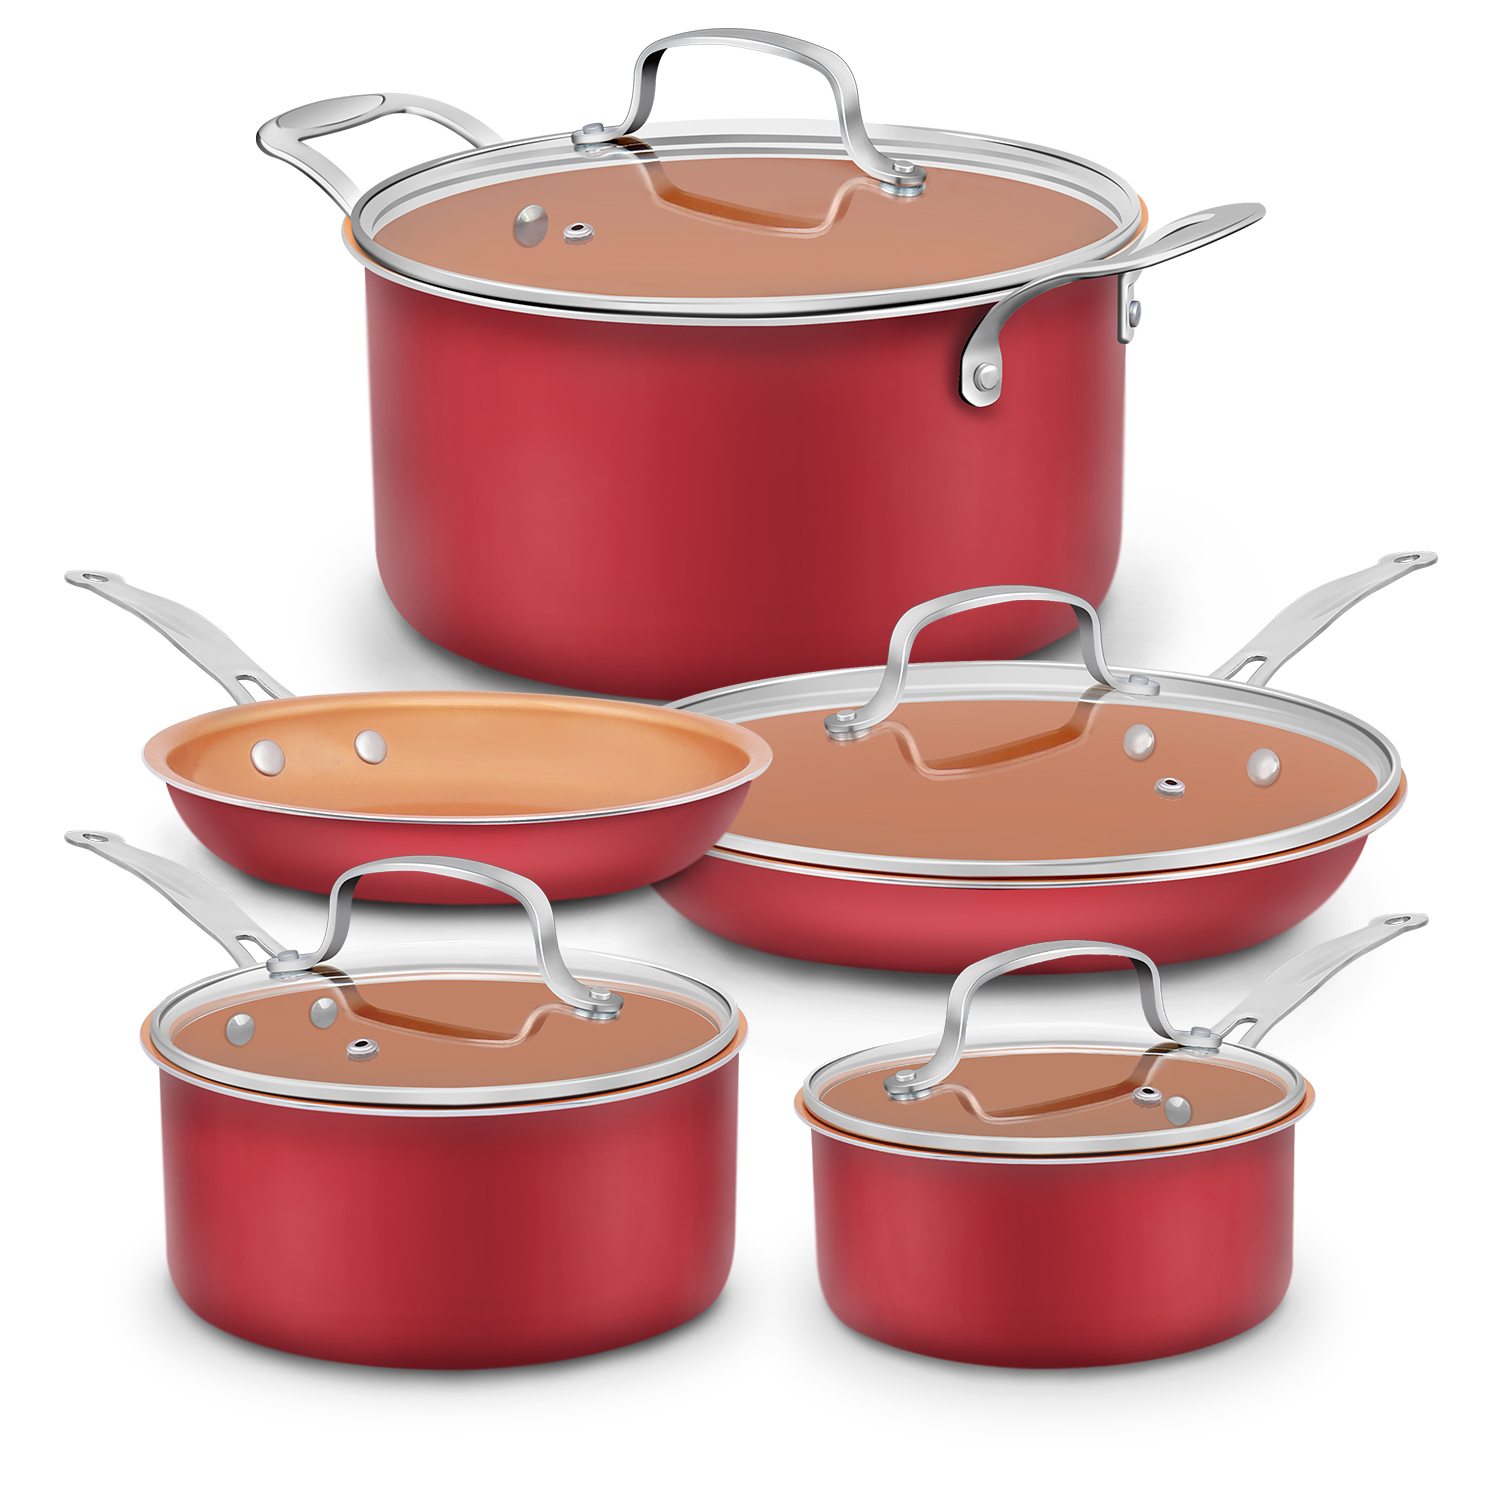 Year-End Deals, Aluminum-Infused Copper Ceramic Non-Stick Cookware Set, Just $99.99